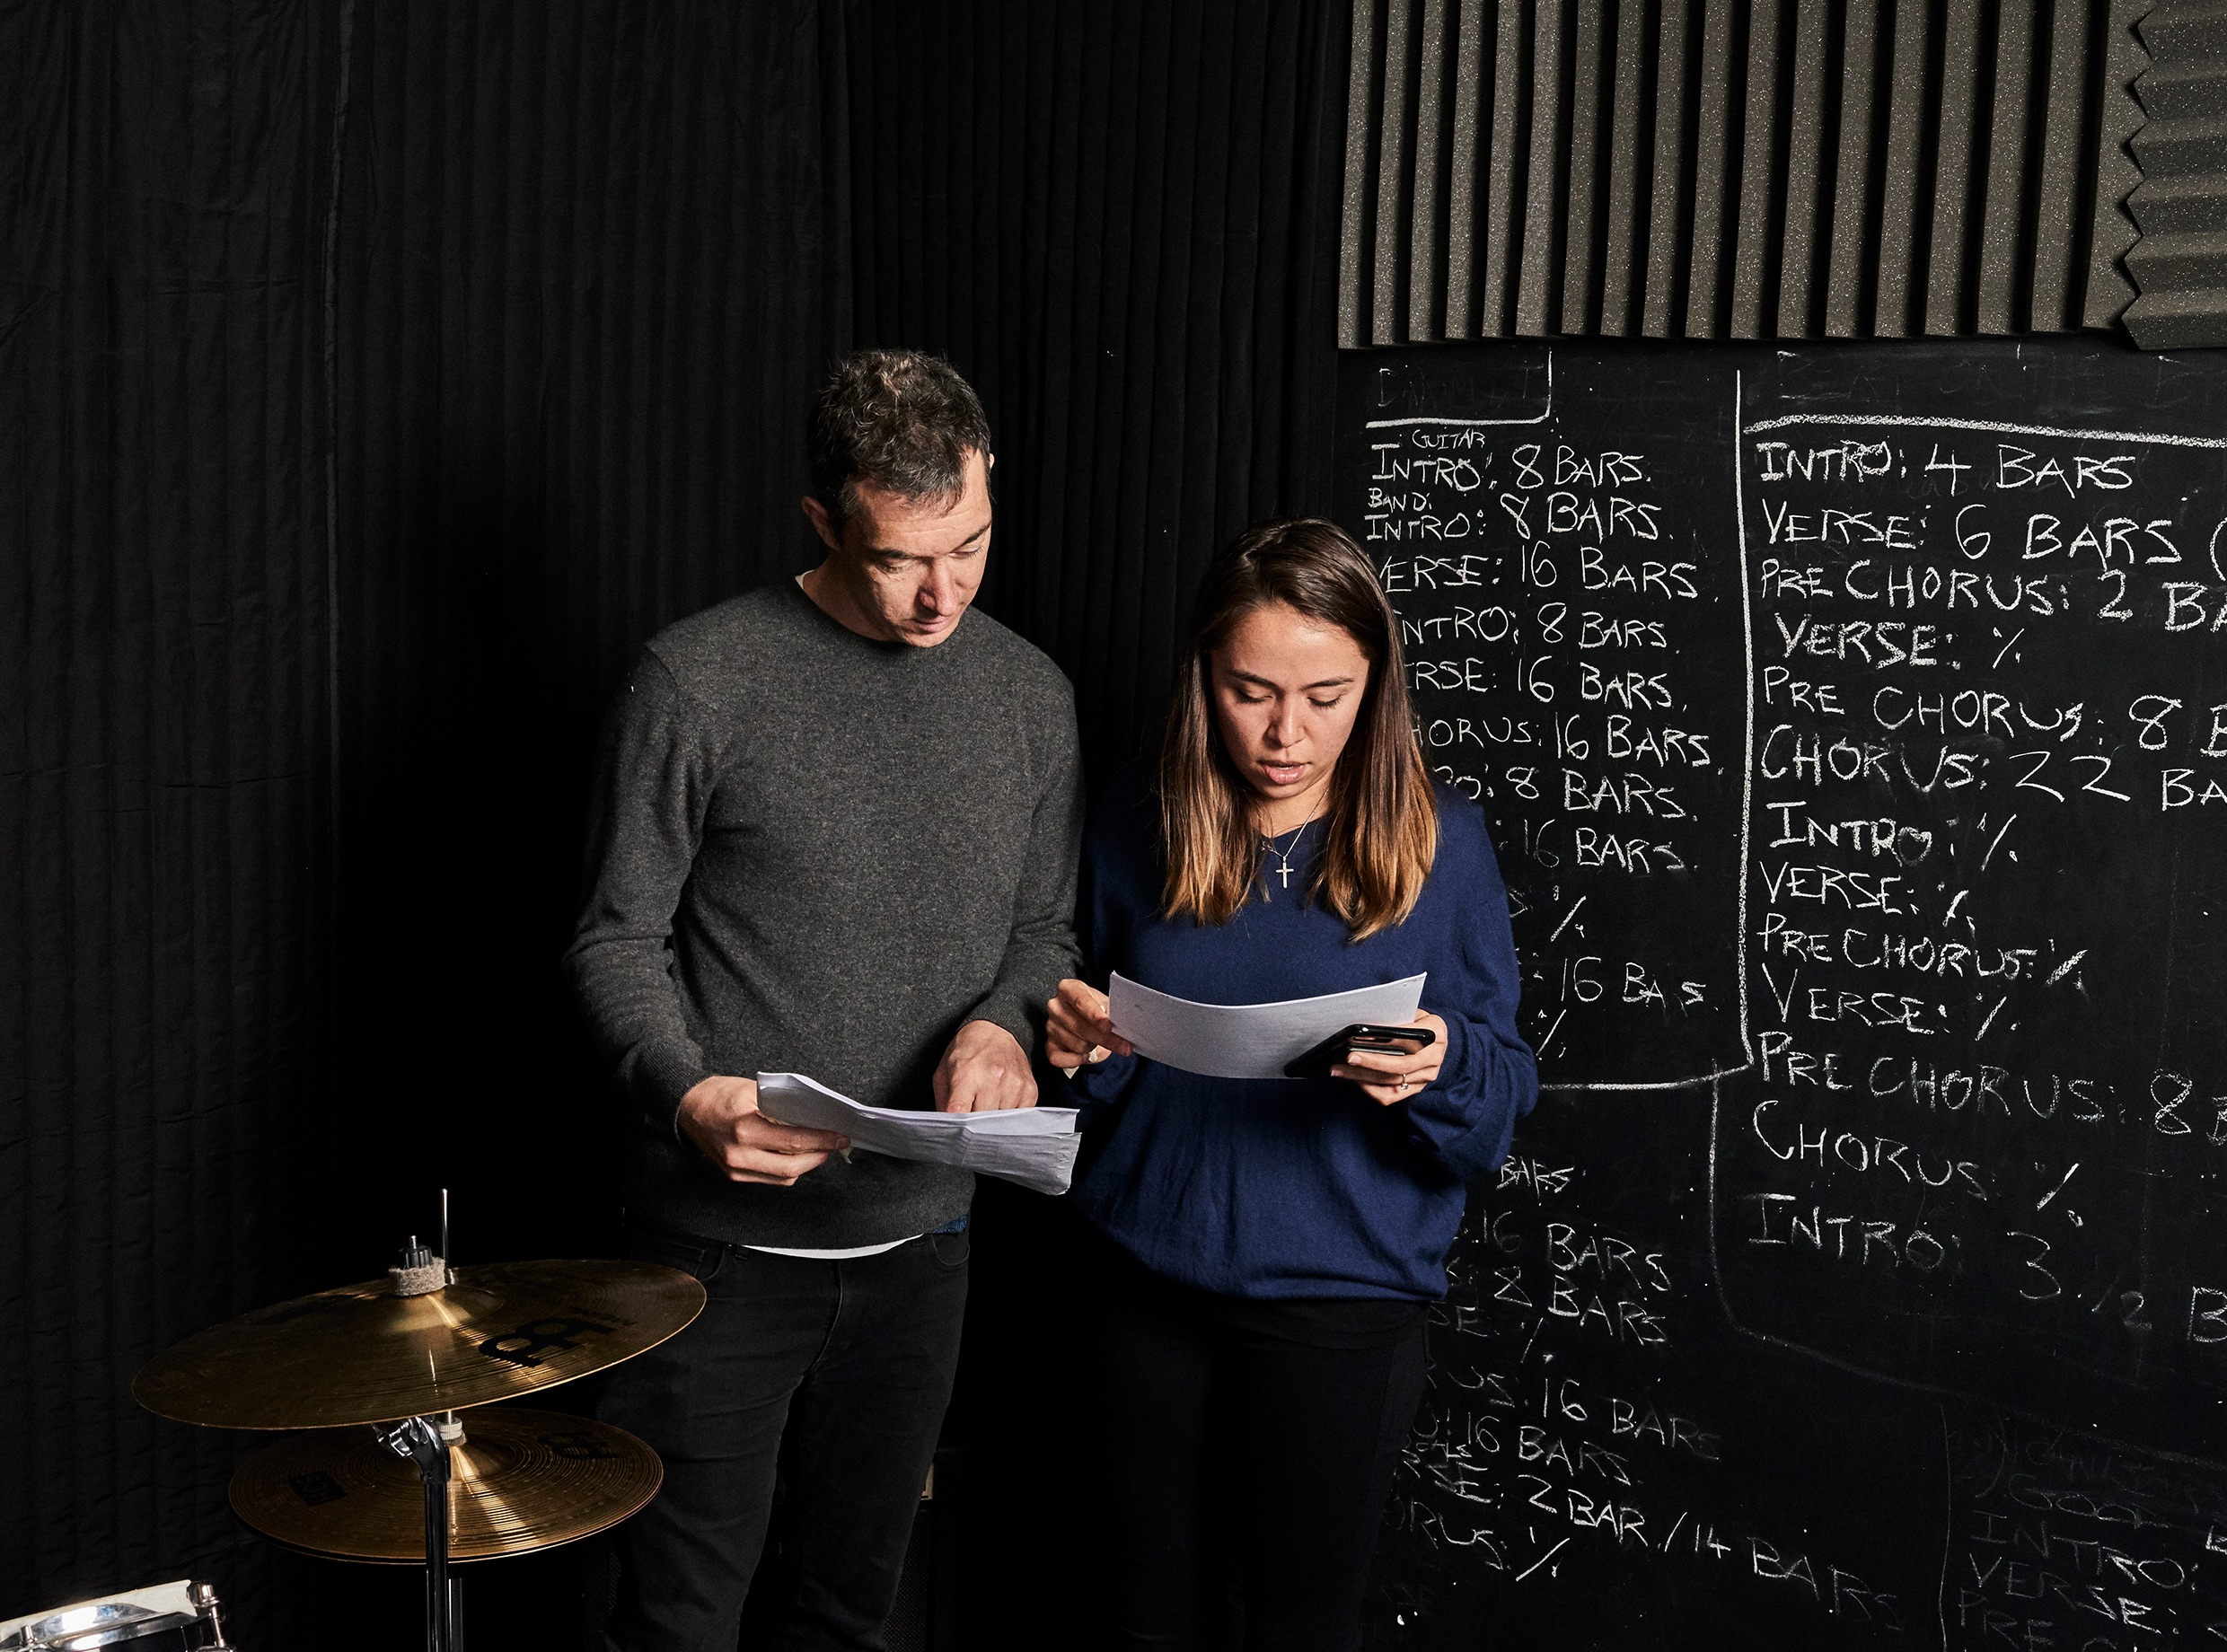 Metajive's Dave and April Benton deep in paperwork. Photographed by Franz Steiner.